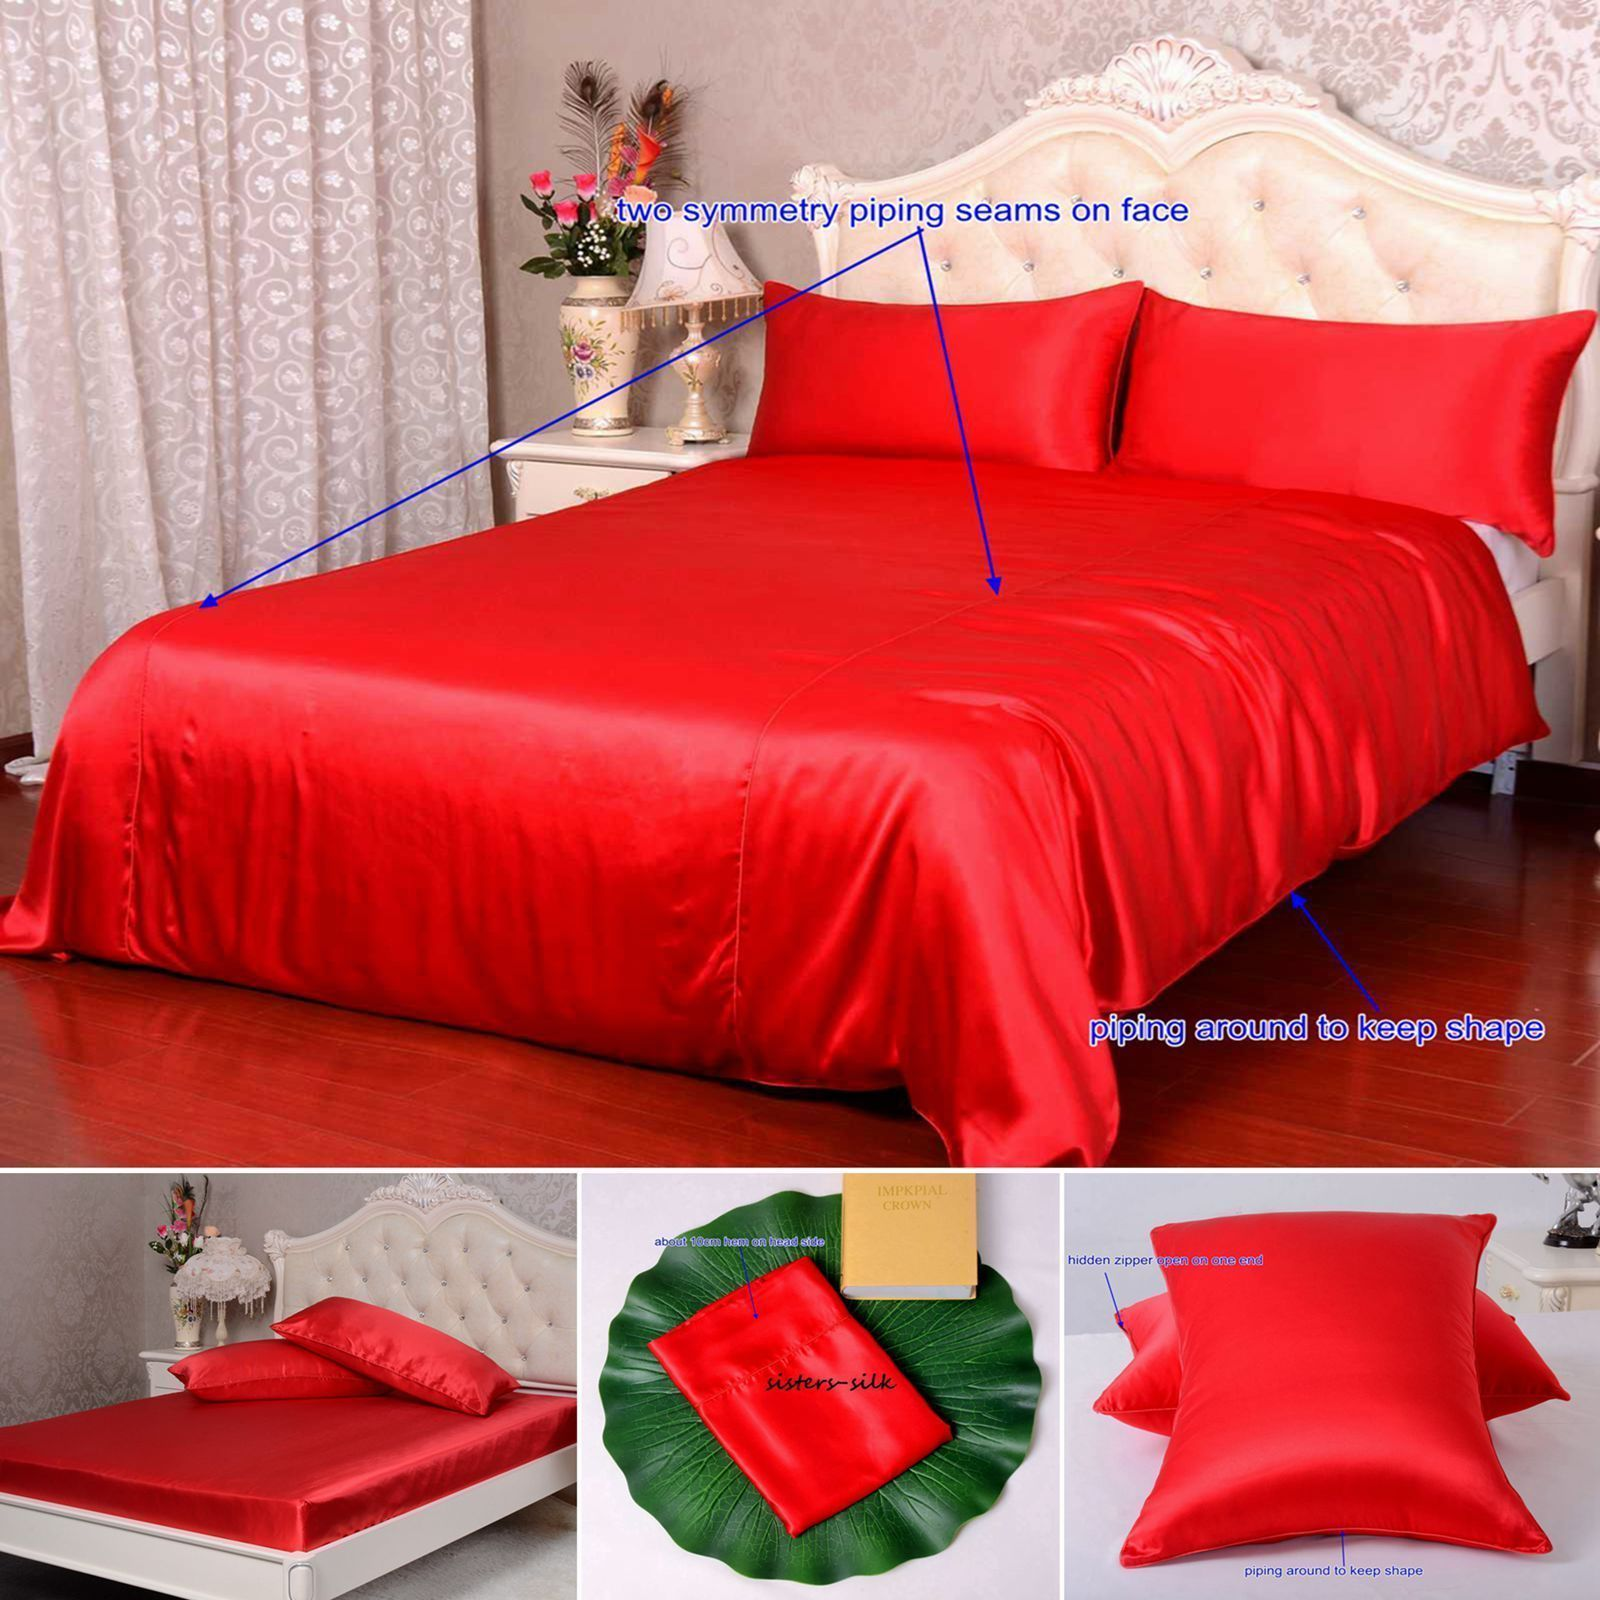 of plaid reversible hotel and king with cotton cover comfortable grey size zipper soft light teal rty navy satin home print deals plain orange paisley lifetb striped ideas covers red decorating sheets stripes upholstered side full tree by flannel comforter queen design duvets closure sets duvet